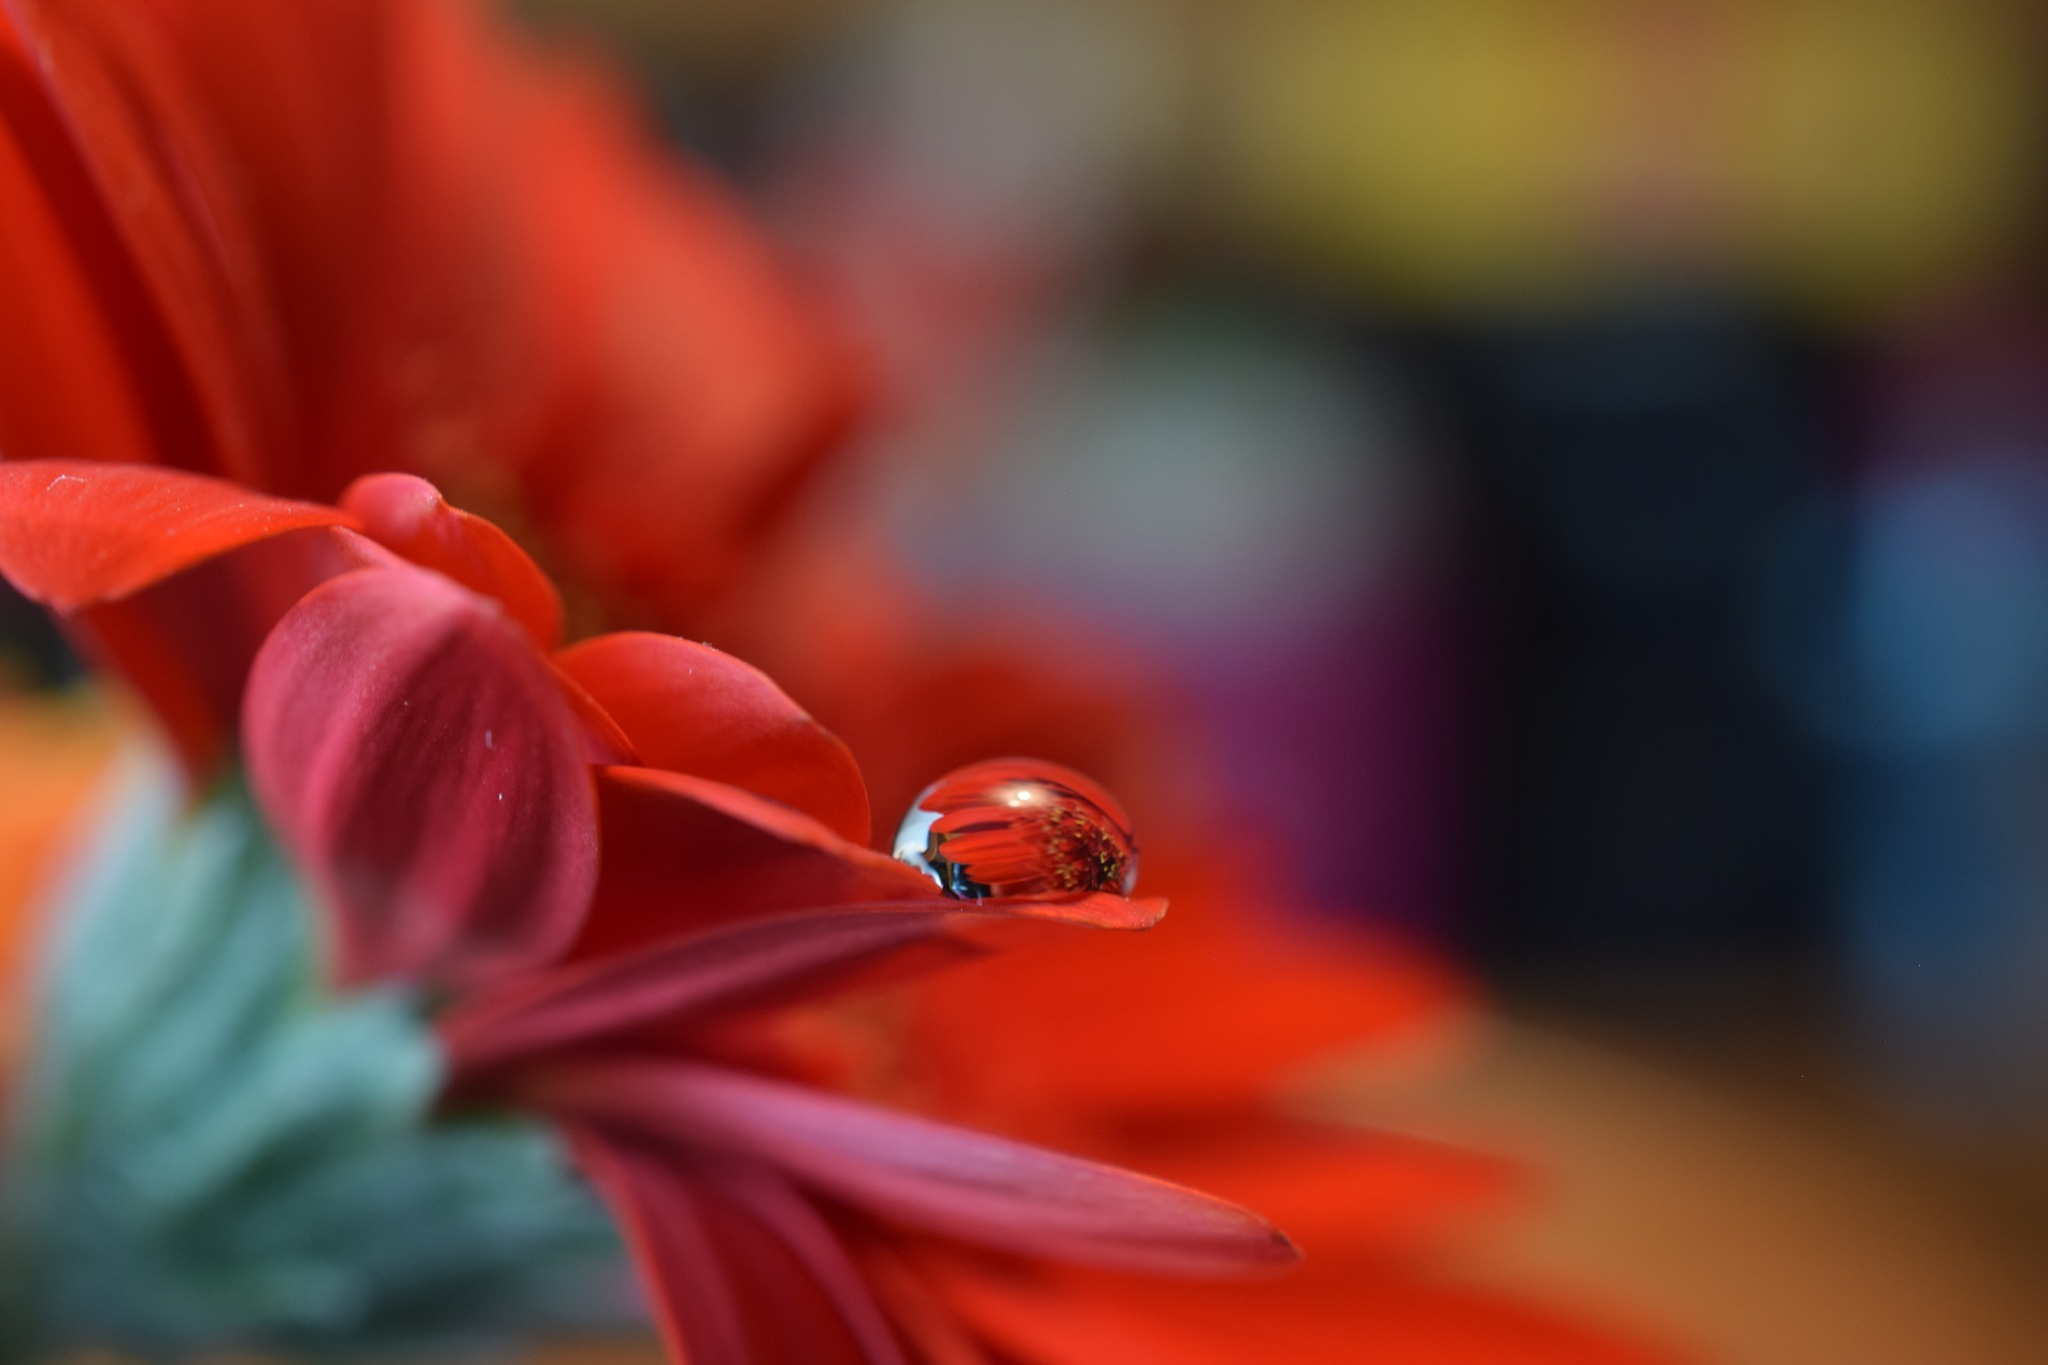 one drope on red flower by Theresia Buskas